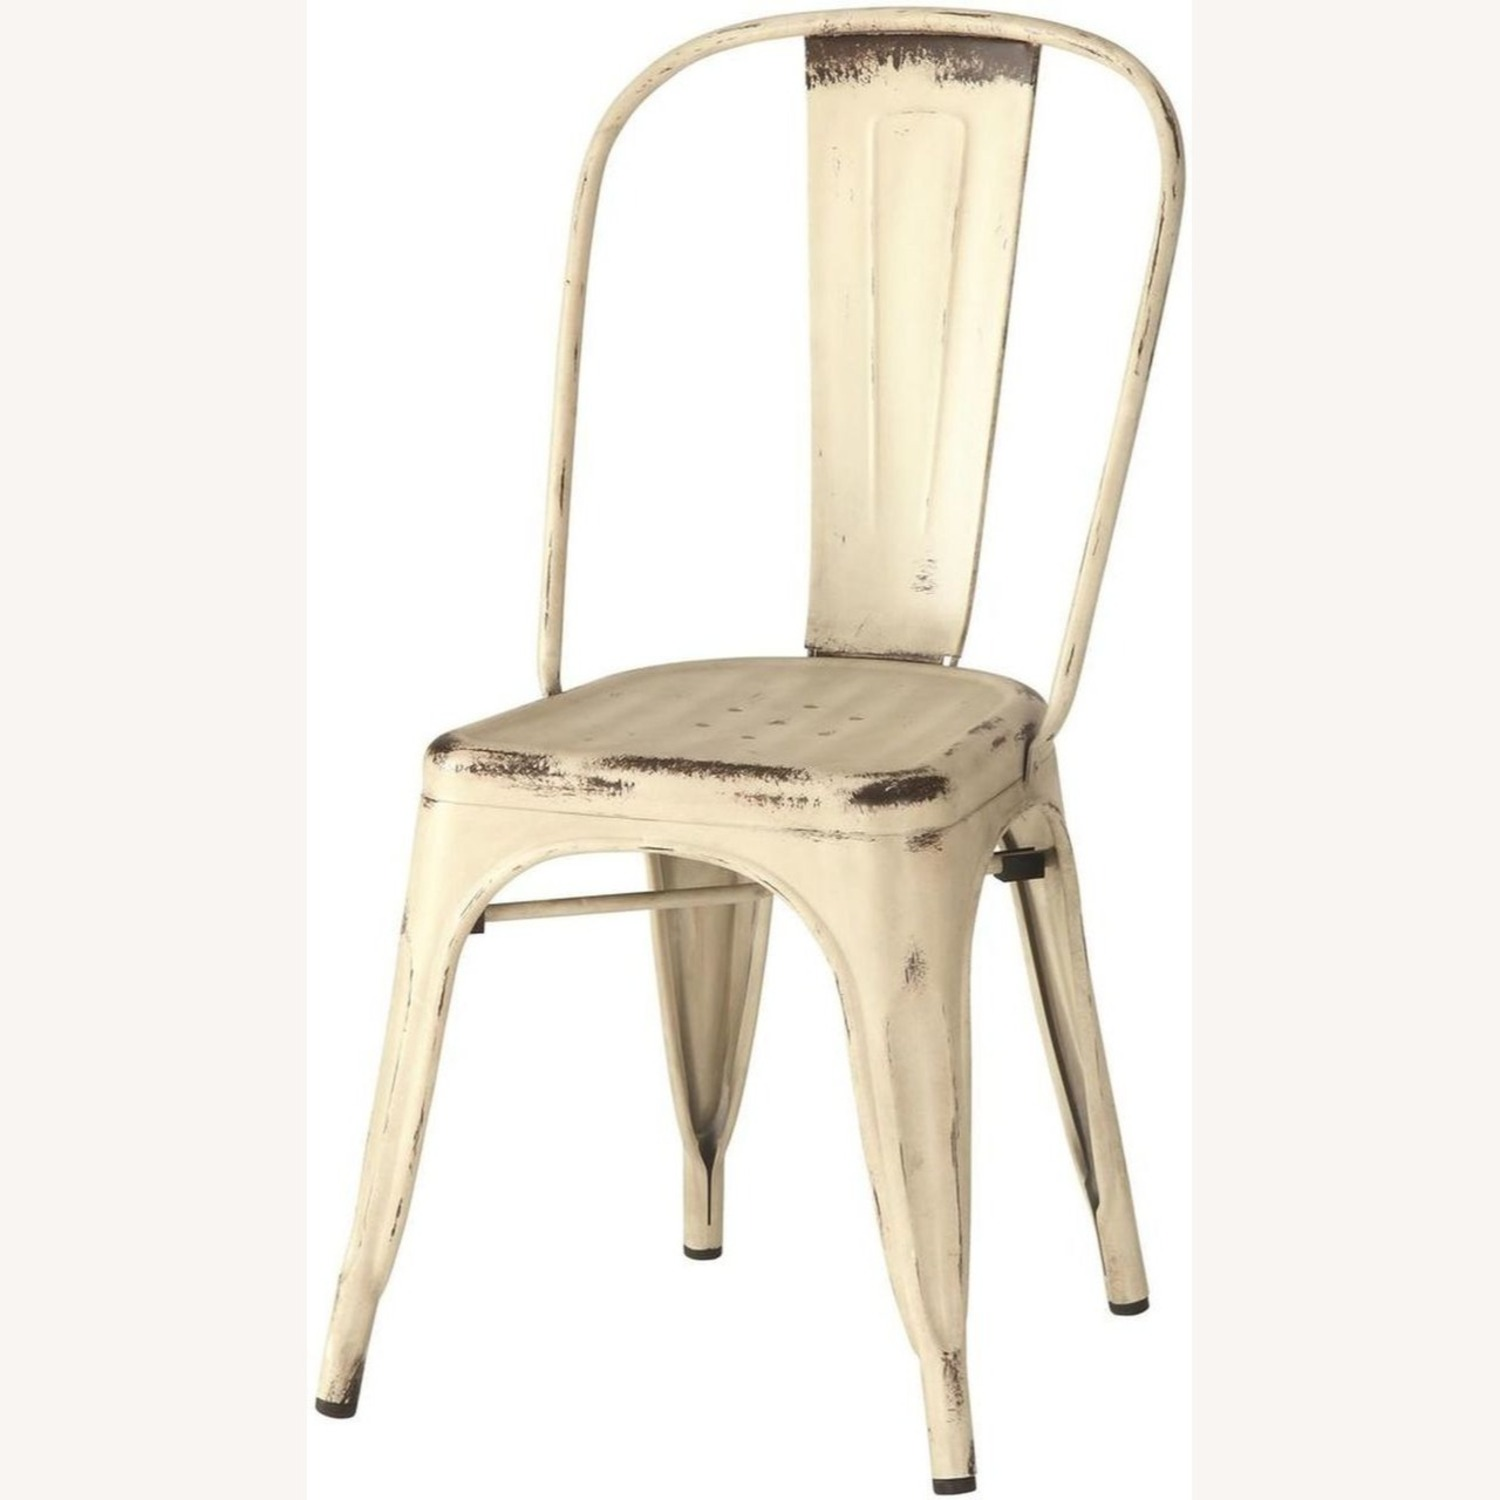 Modern Industrial Dining Chair In White Metal - image-1